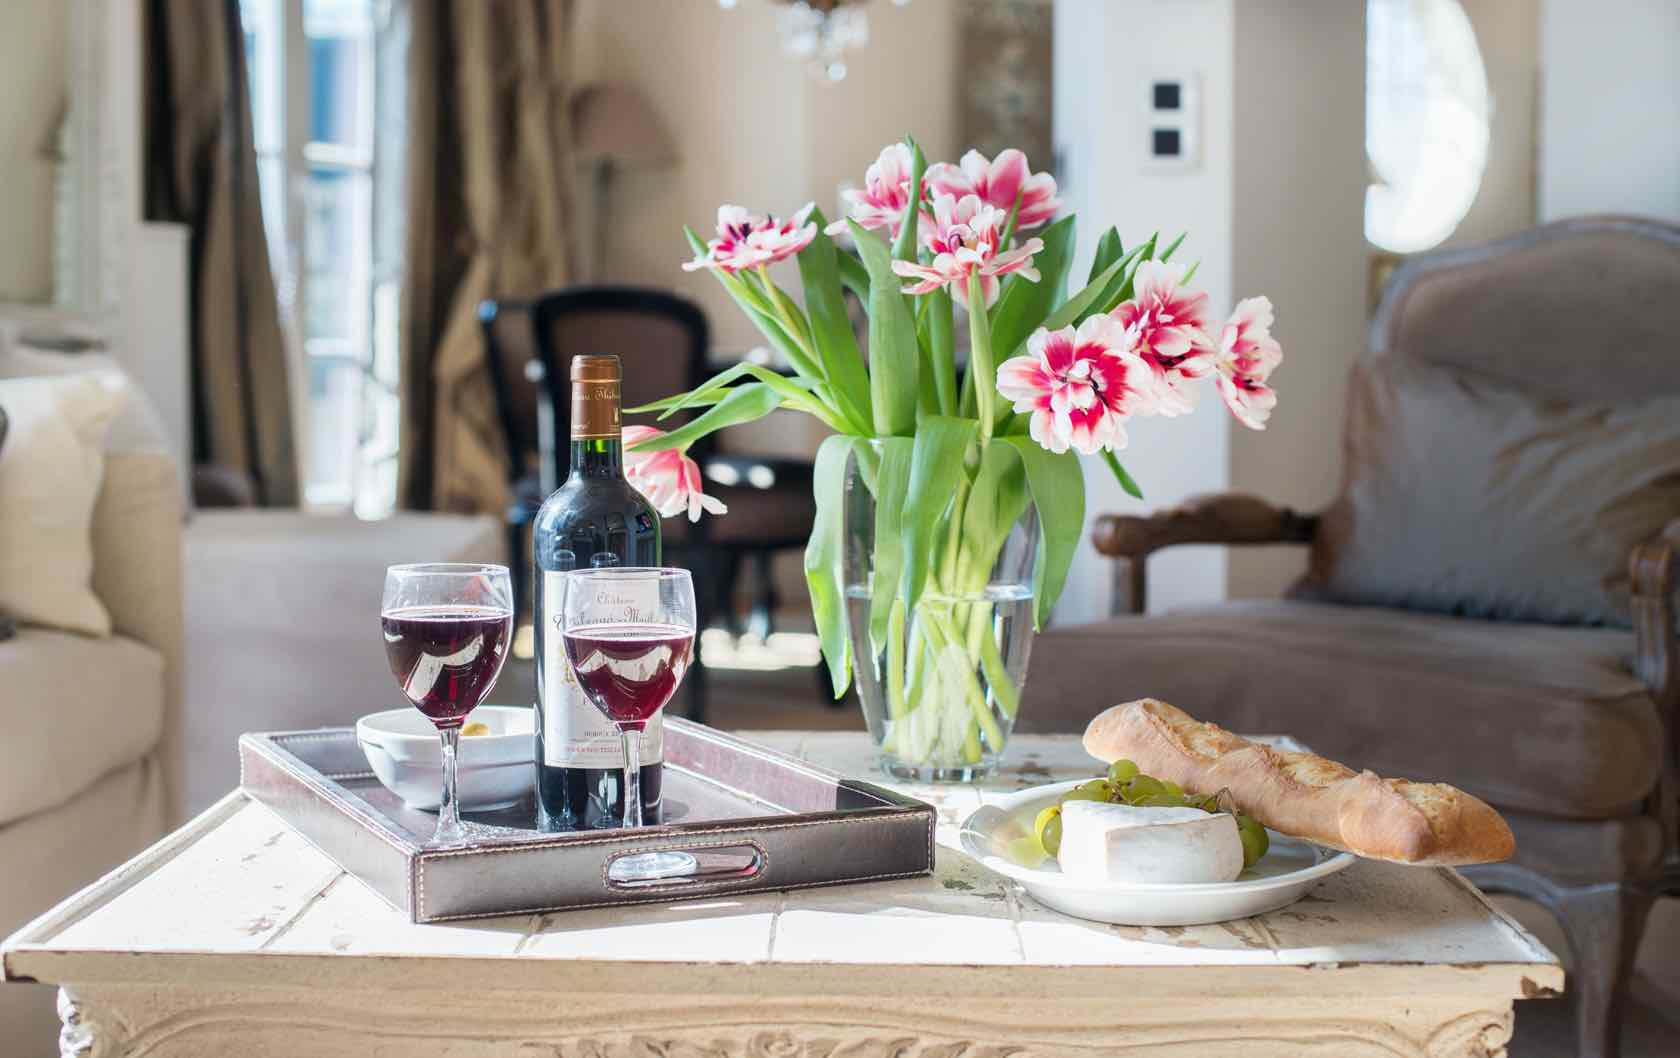 Santé! Here's how to Create a French Apéro at Home